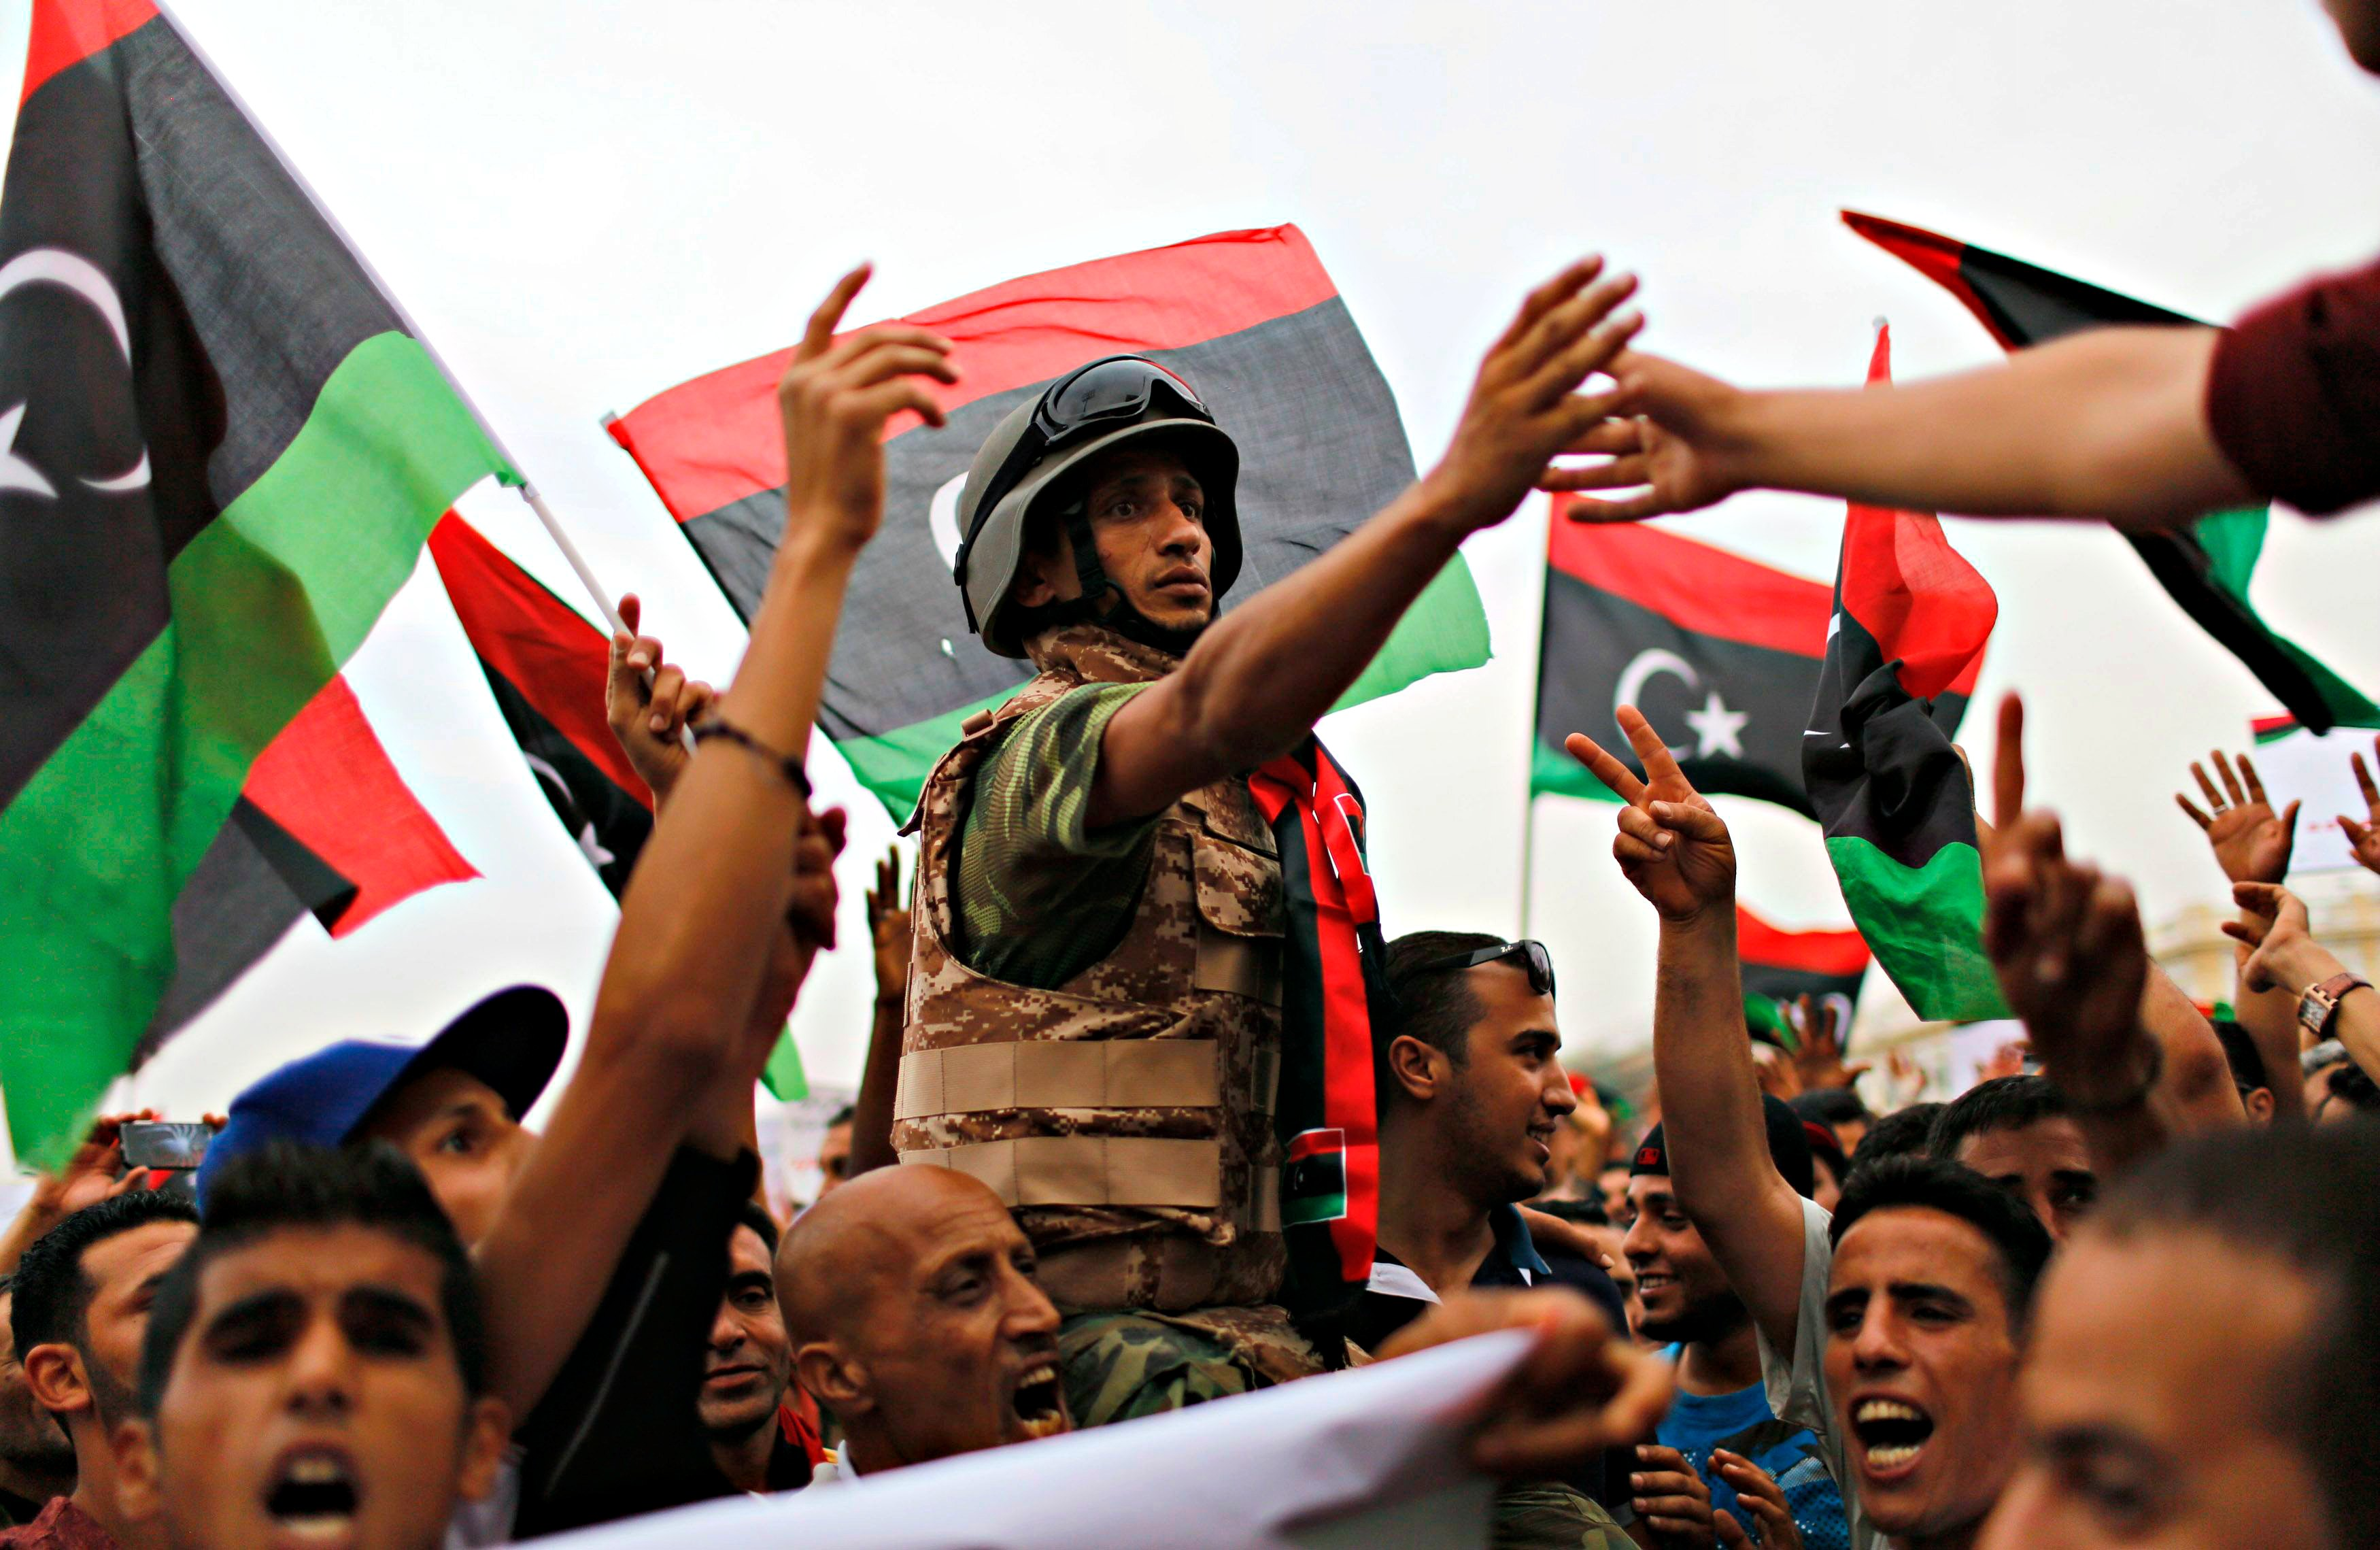 libyan civil war The libyan civil war the underlying causes what's underneath the 'tip of the iceberg' about the libyan people: tribes what are the underlying causes discriminatory economic policy which level of analysis discriminatory political institution .